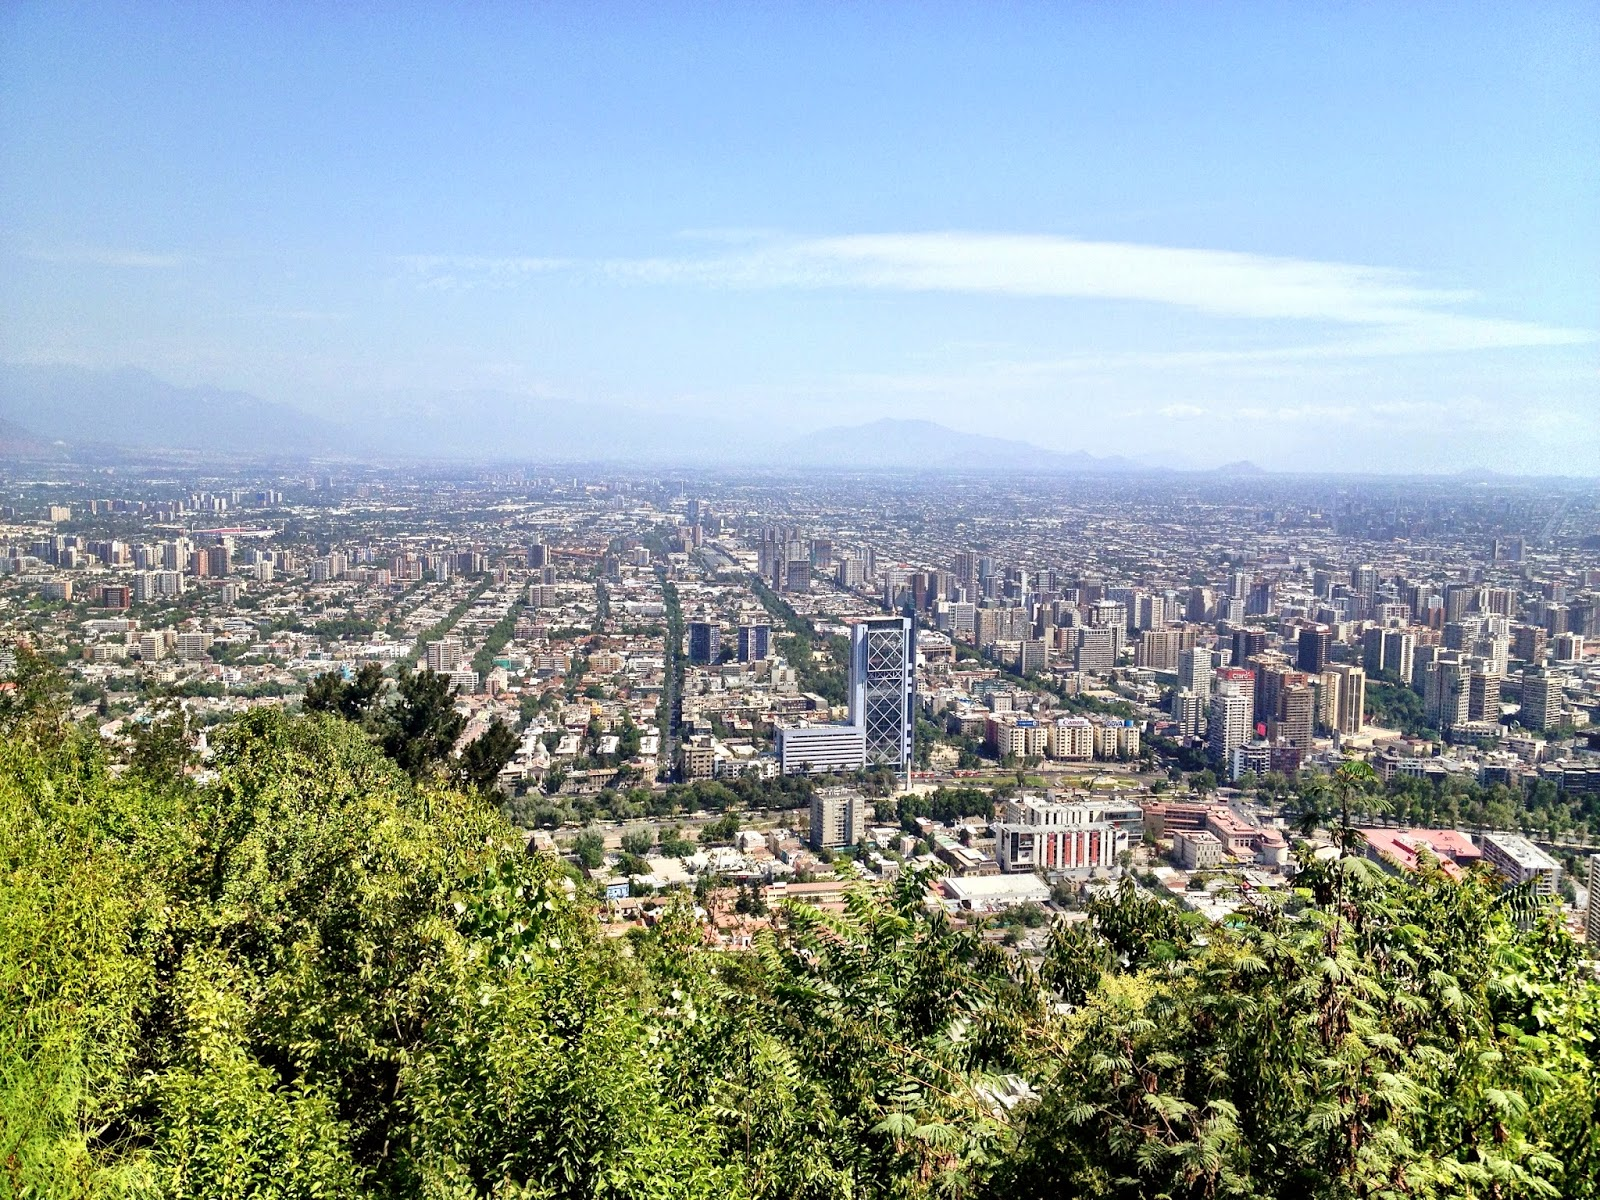 The view from Cerro San Cristobal, Santiago